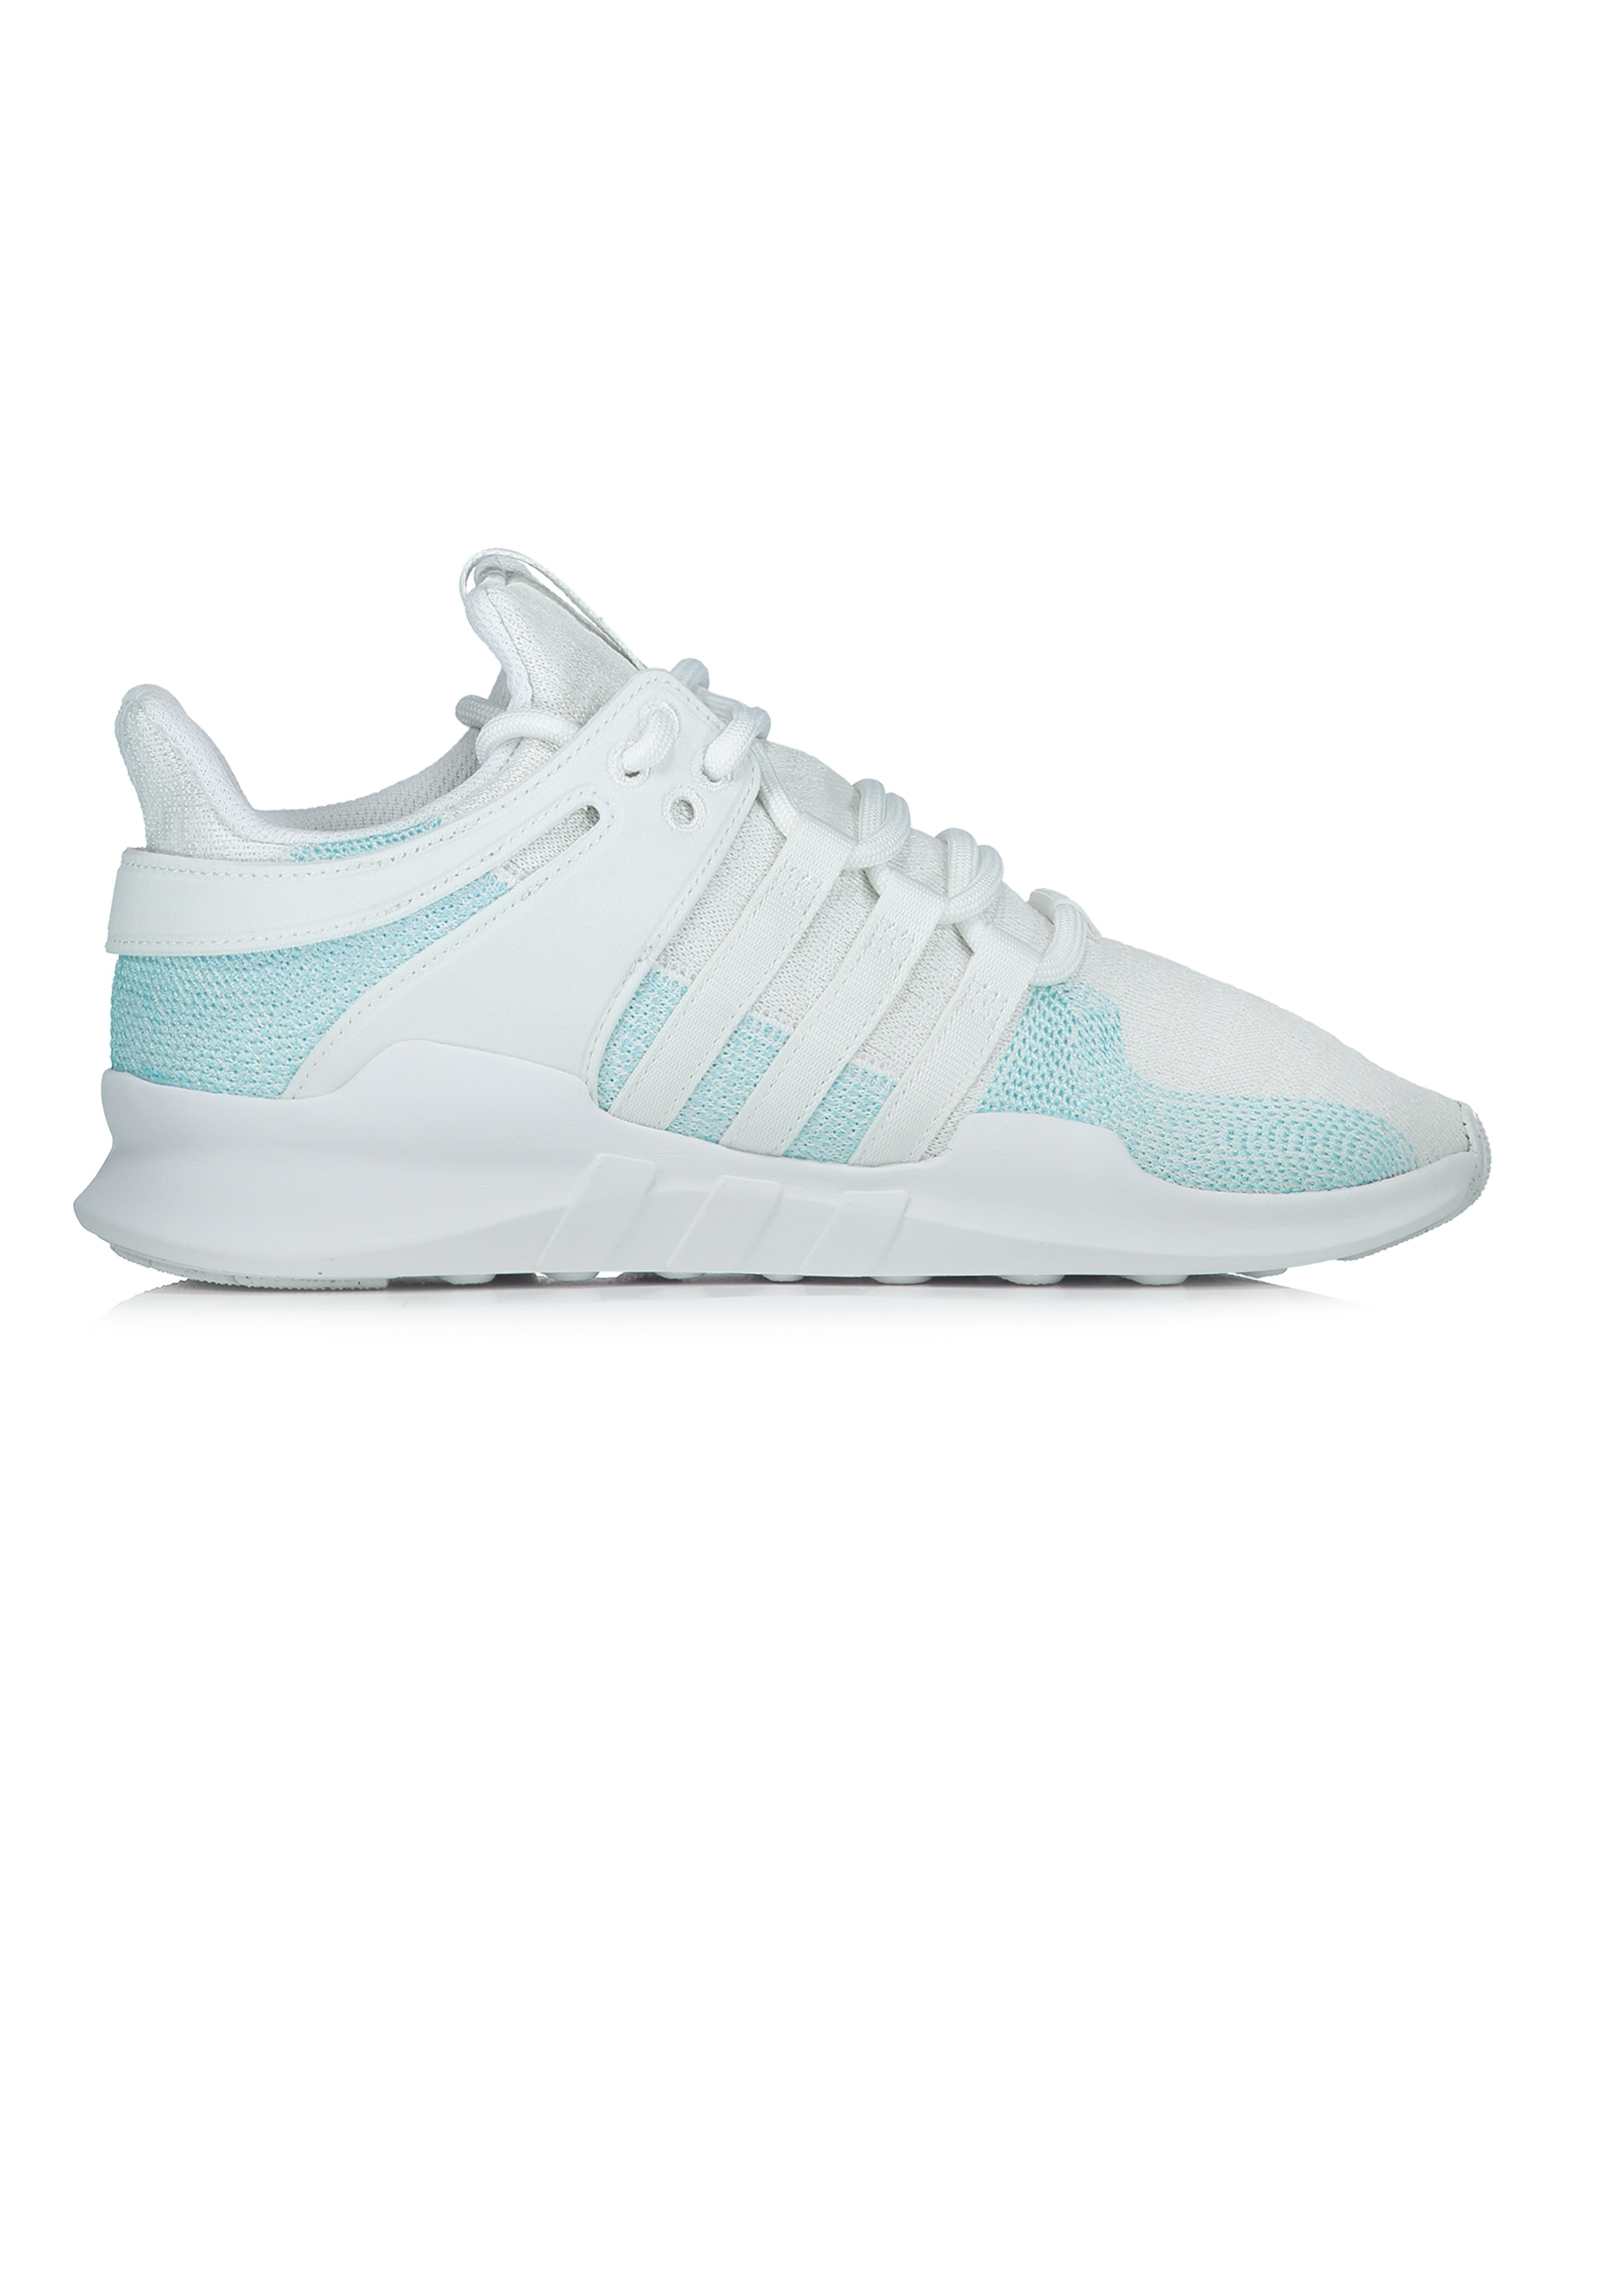 sports shoes f3794 616dc adidas Originals Footwear x Parley EQT Support ADV - White